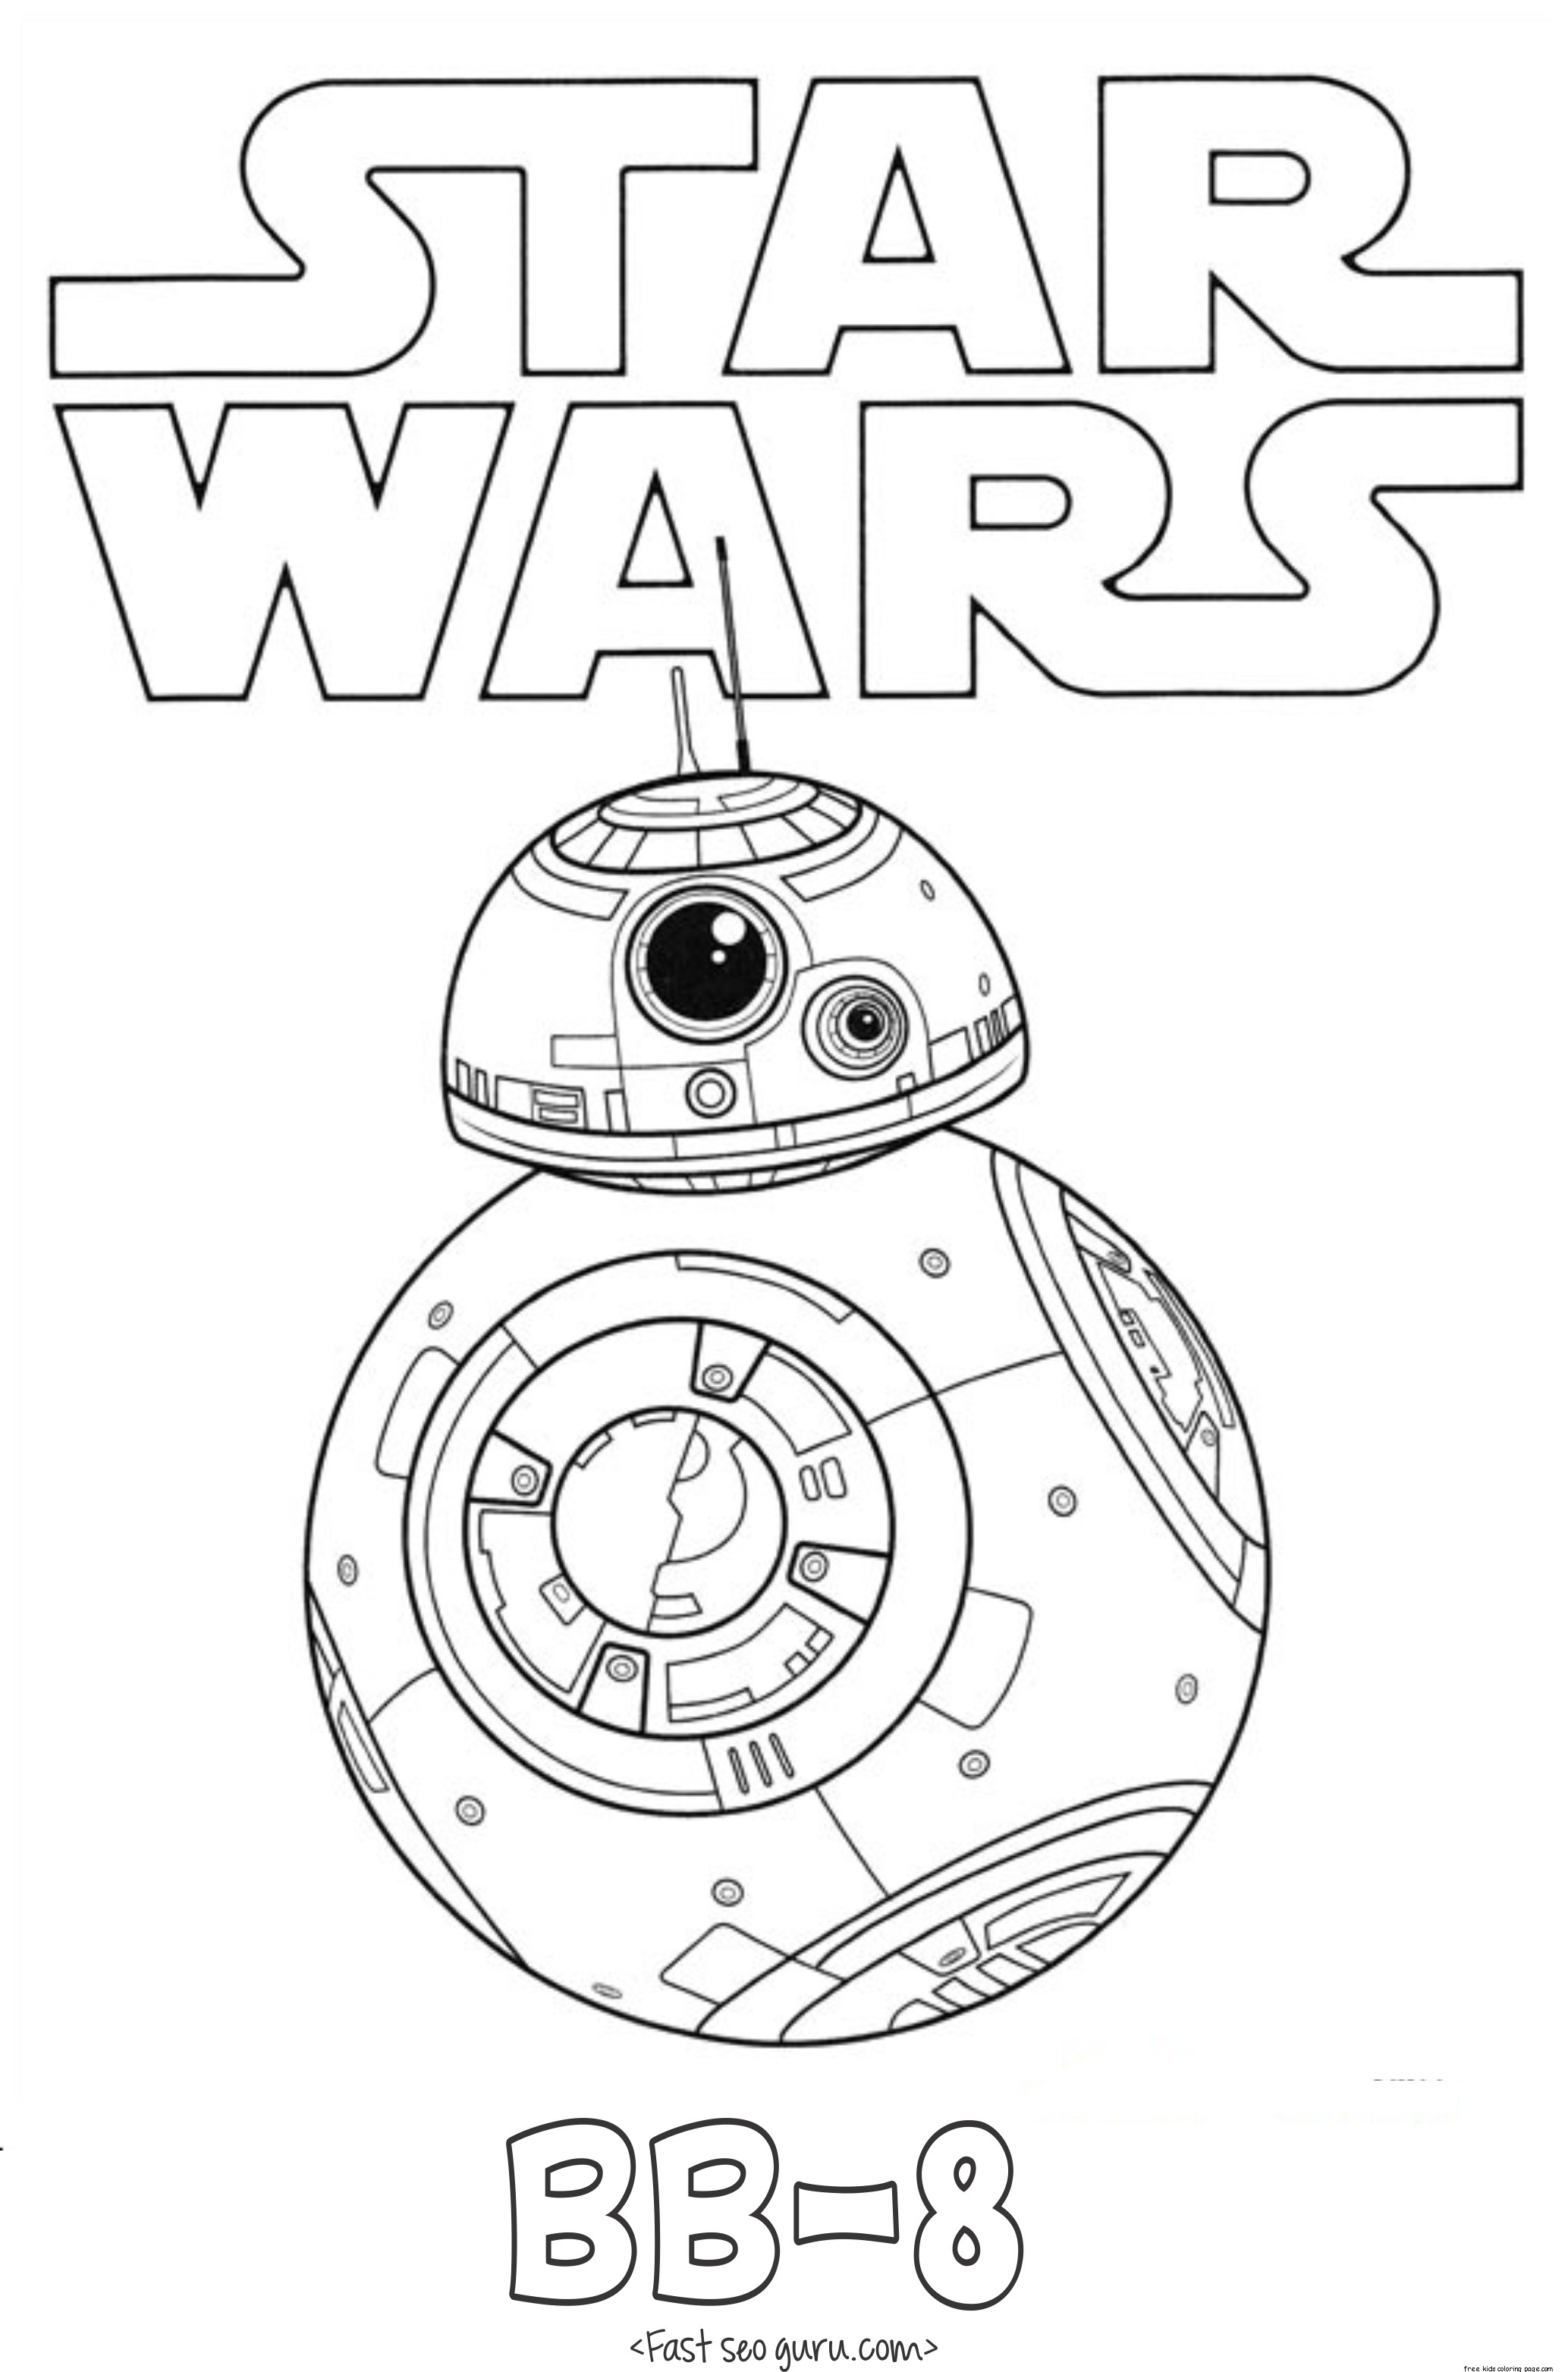 star wars free coloring pages coloring pages star wars free printable coloring pages star wars coloring pages free